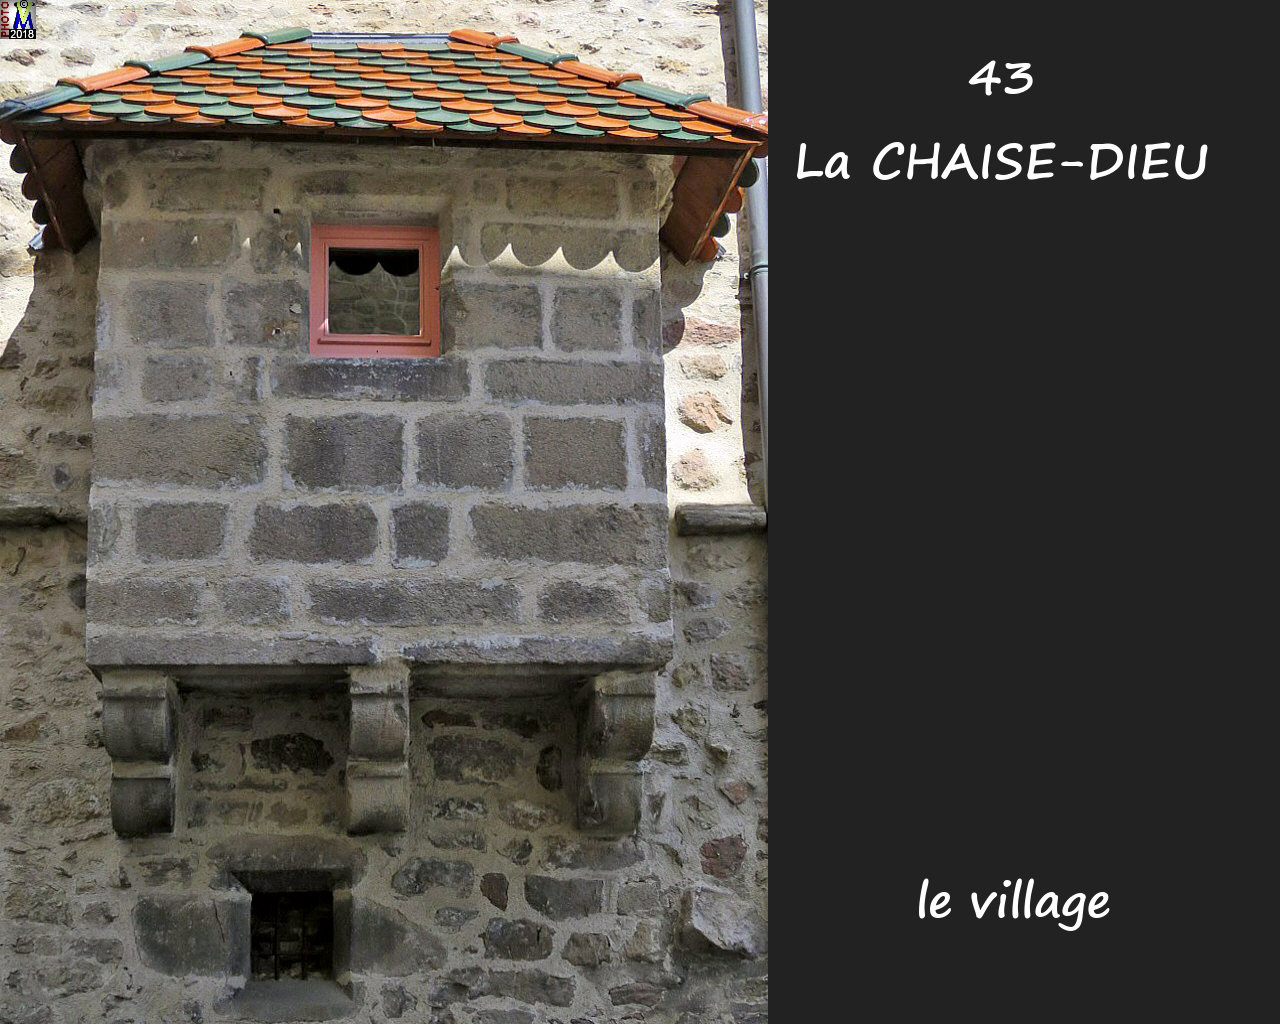 43CHAISE-DIEU_village_154.jpg